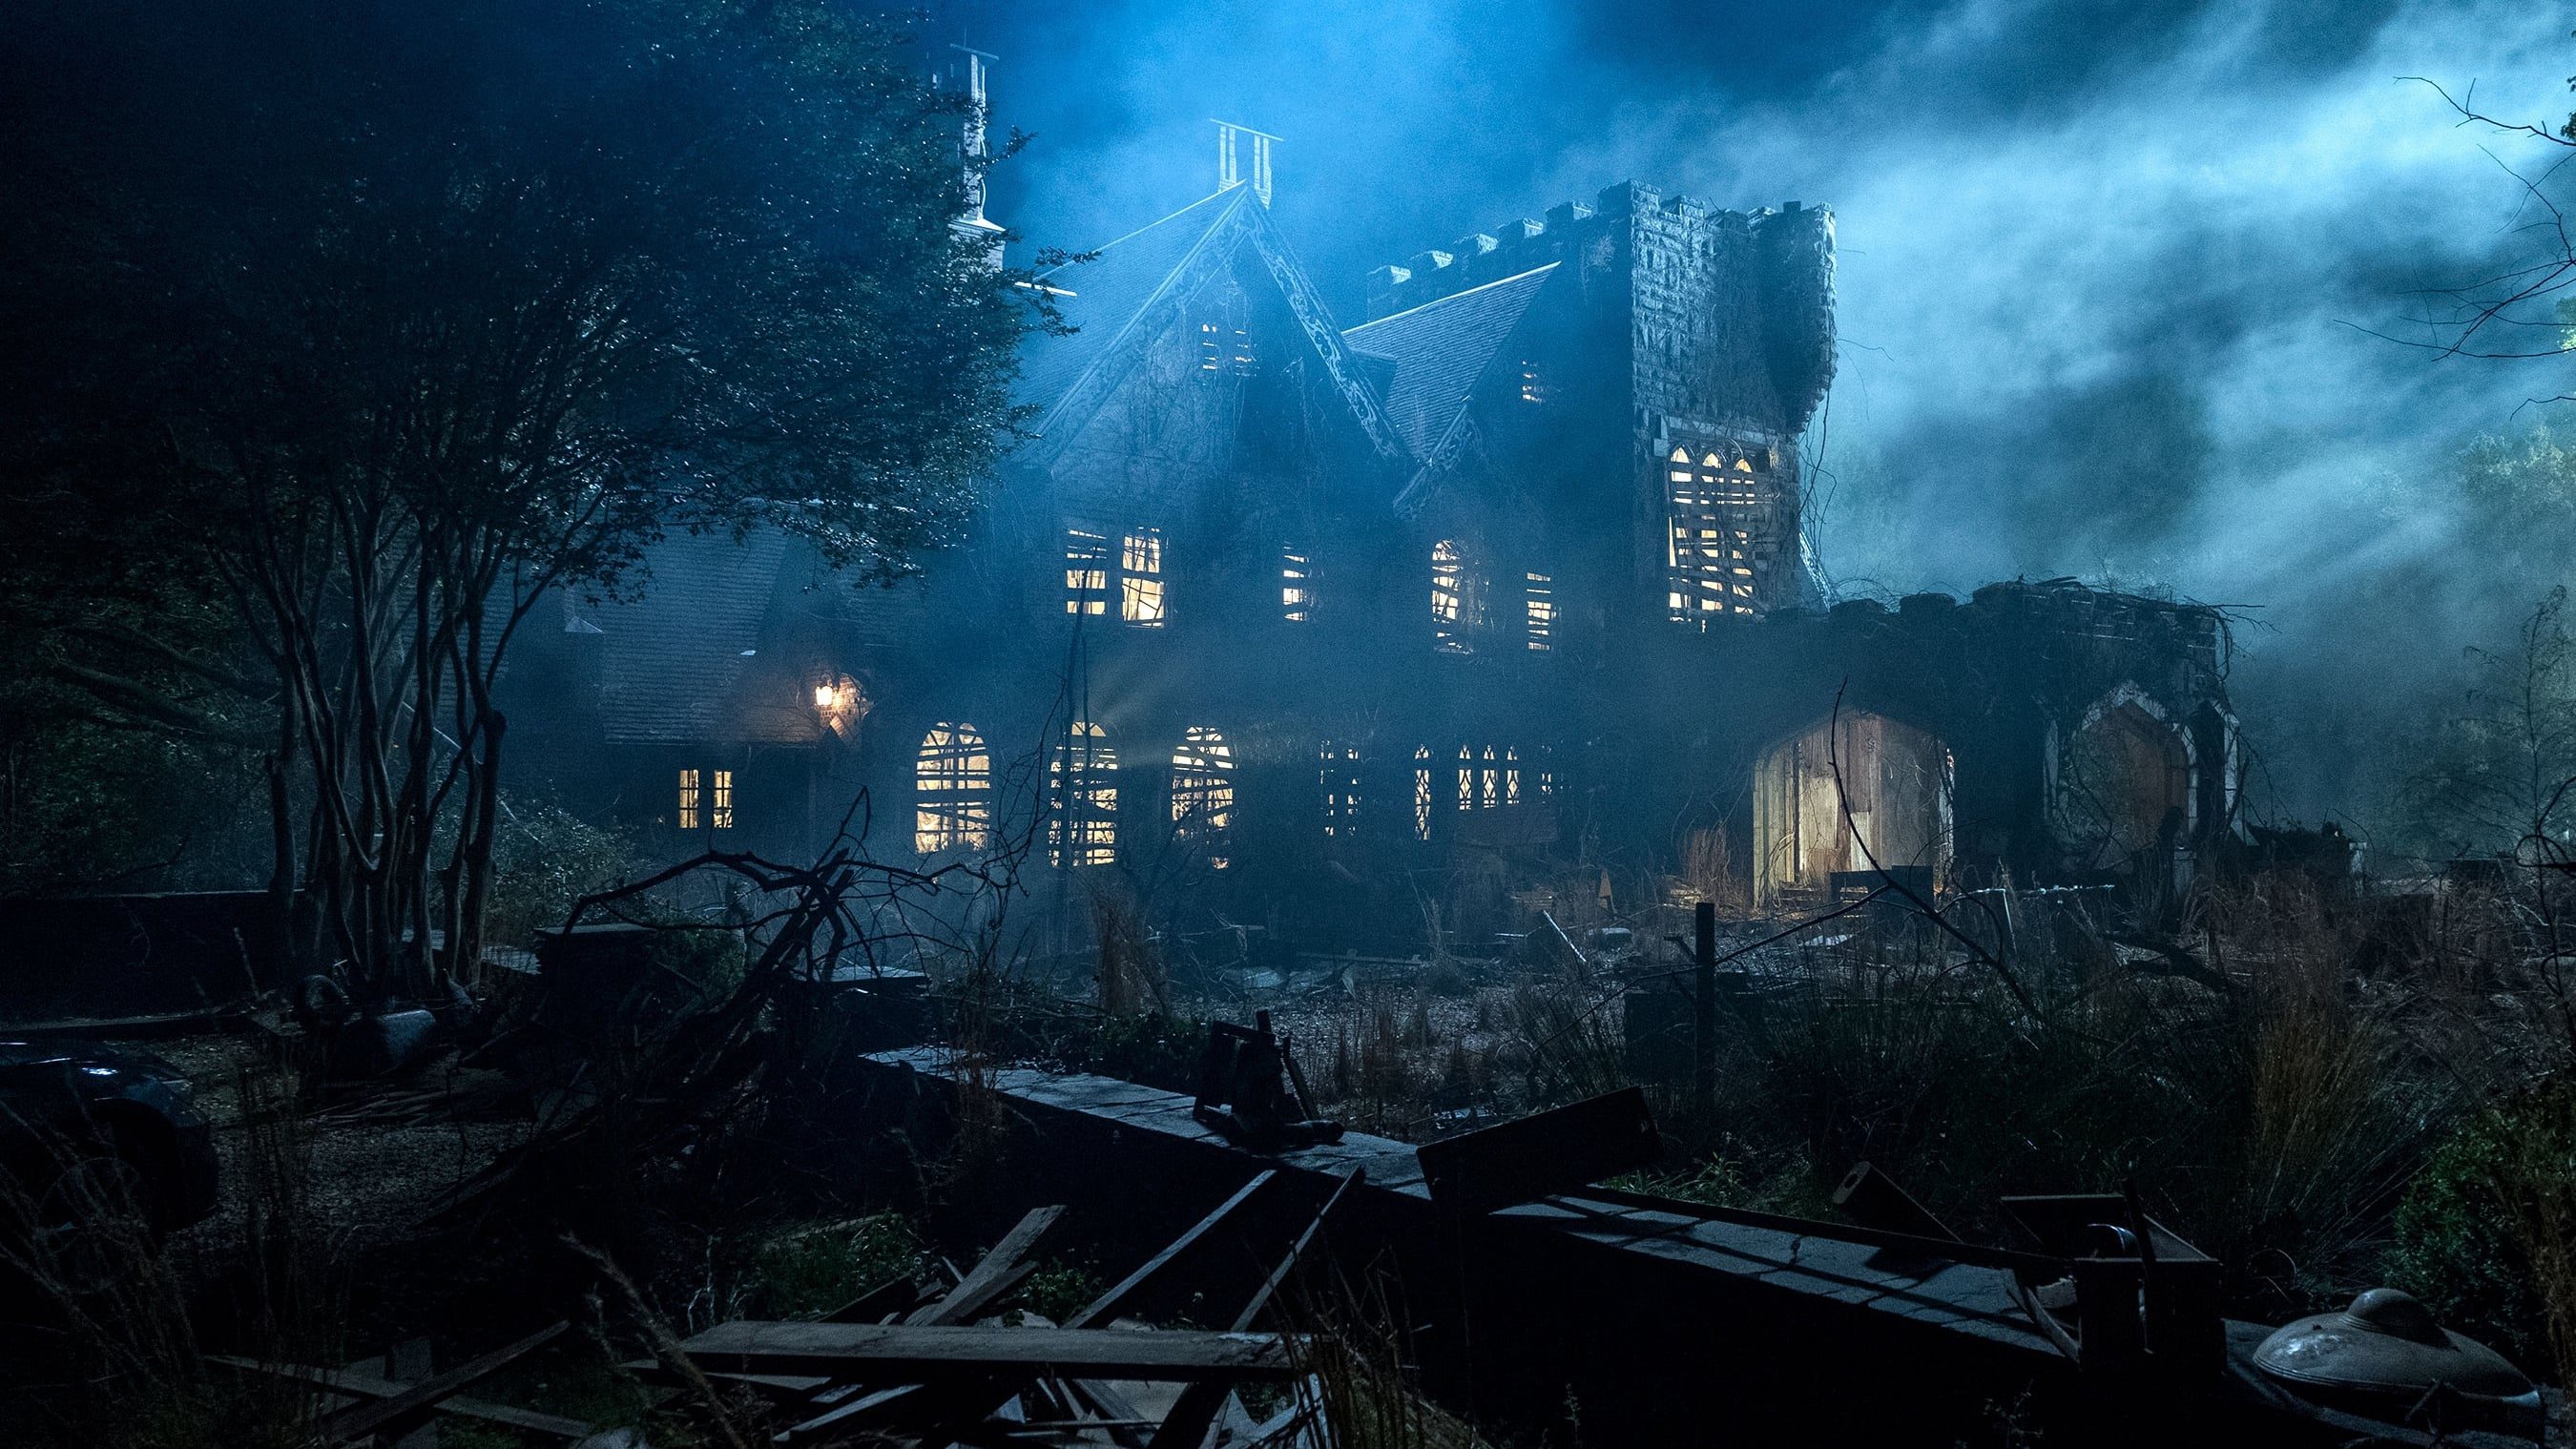 The first season, titled The Haunting of Hill House:Flashing between past and present, a fractured family confronts haunting memories of their old home and the terrifying events that drove them from it.The second season is titled The Haunting of Bly Manor.